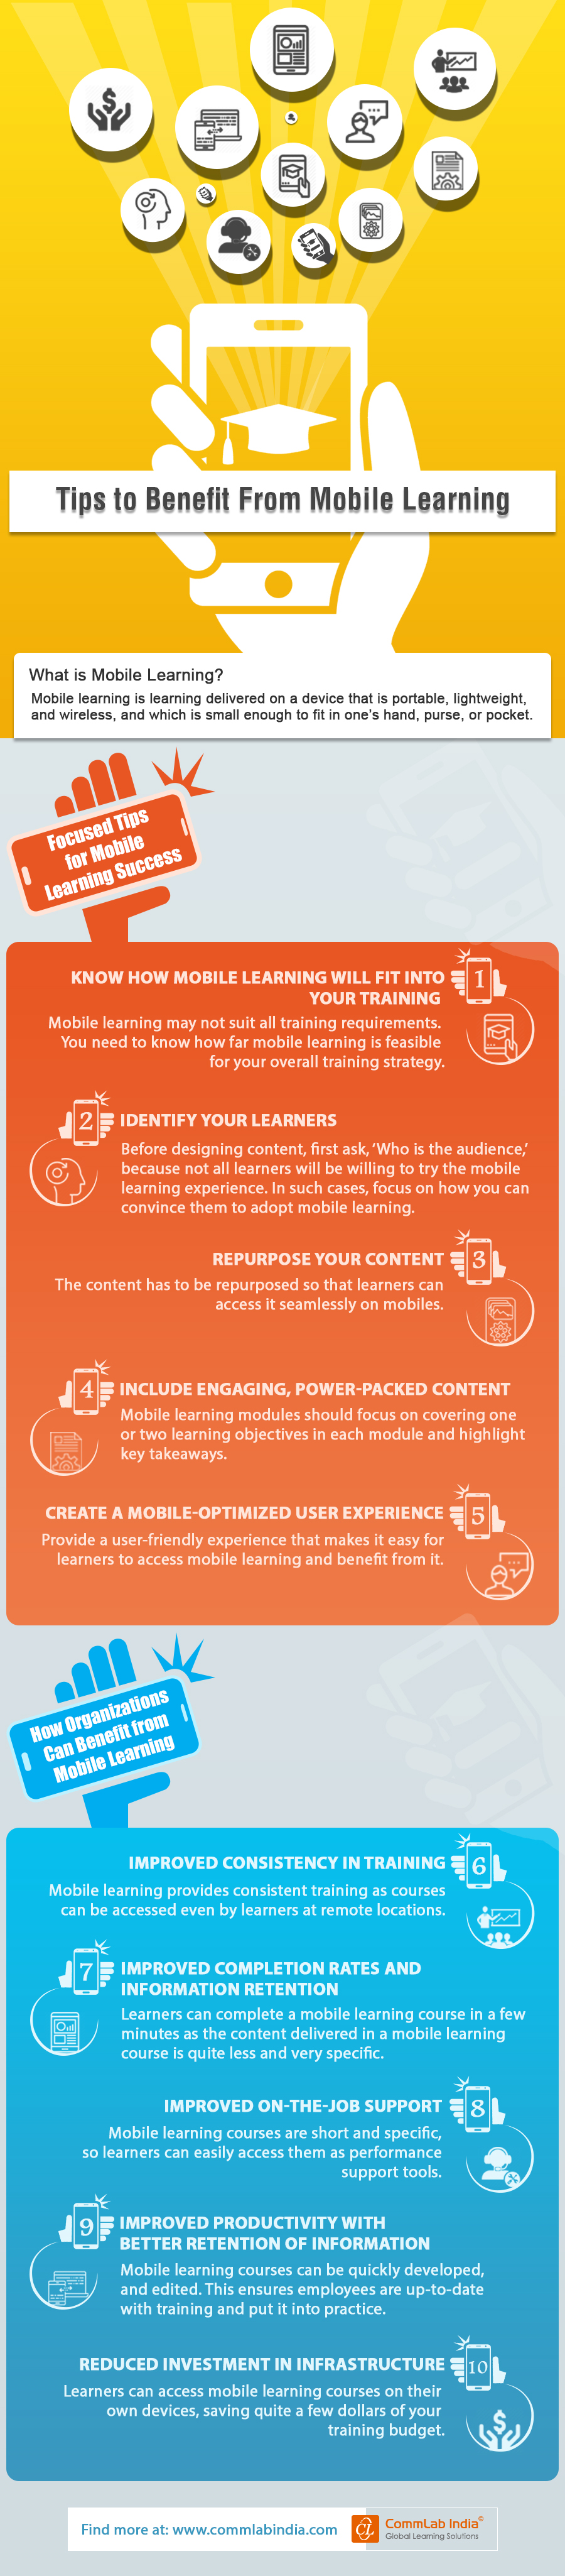 Tips to Help Organizations Benefit from Mobile Learning [Infographic]